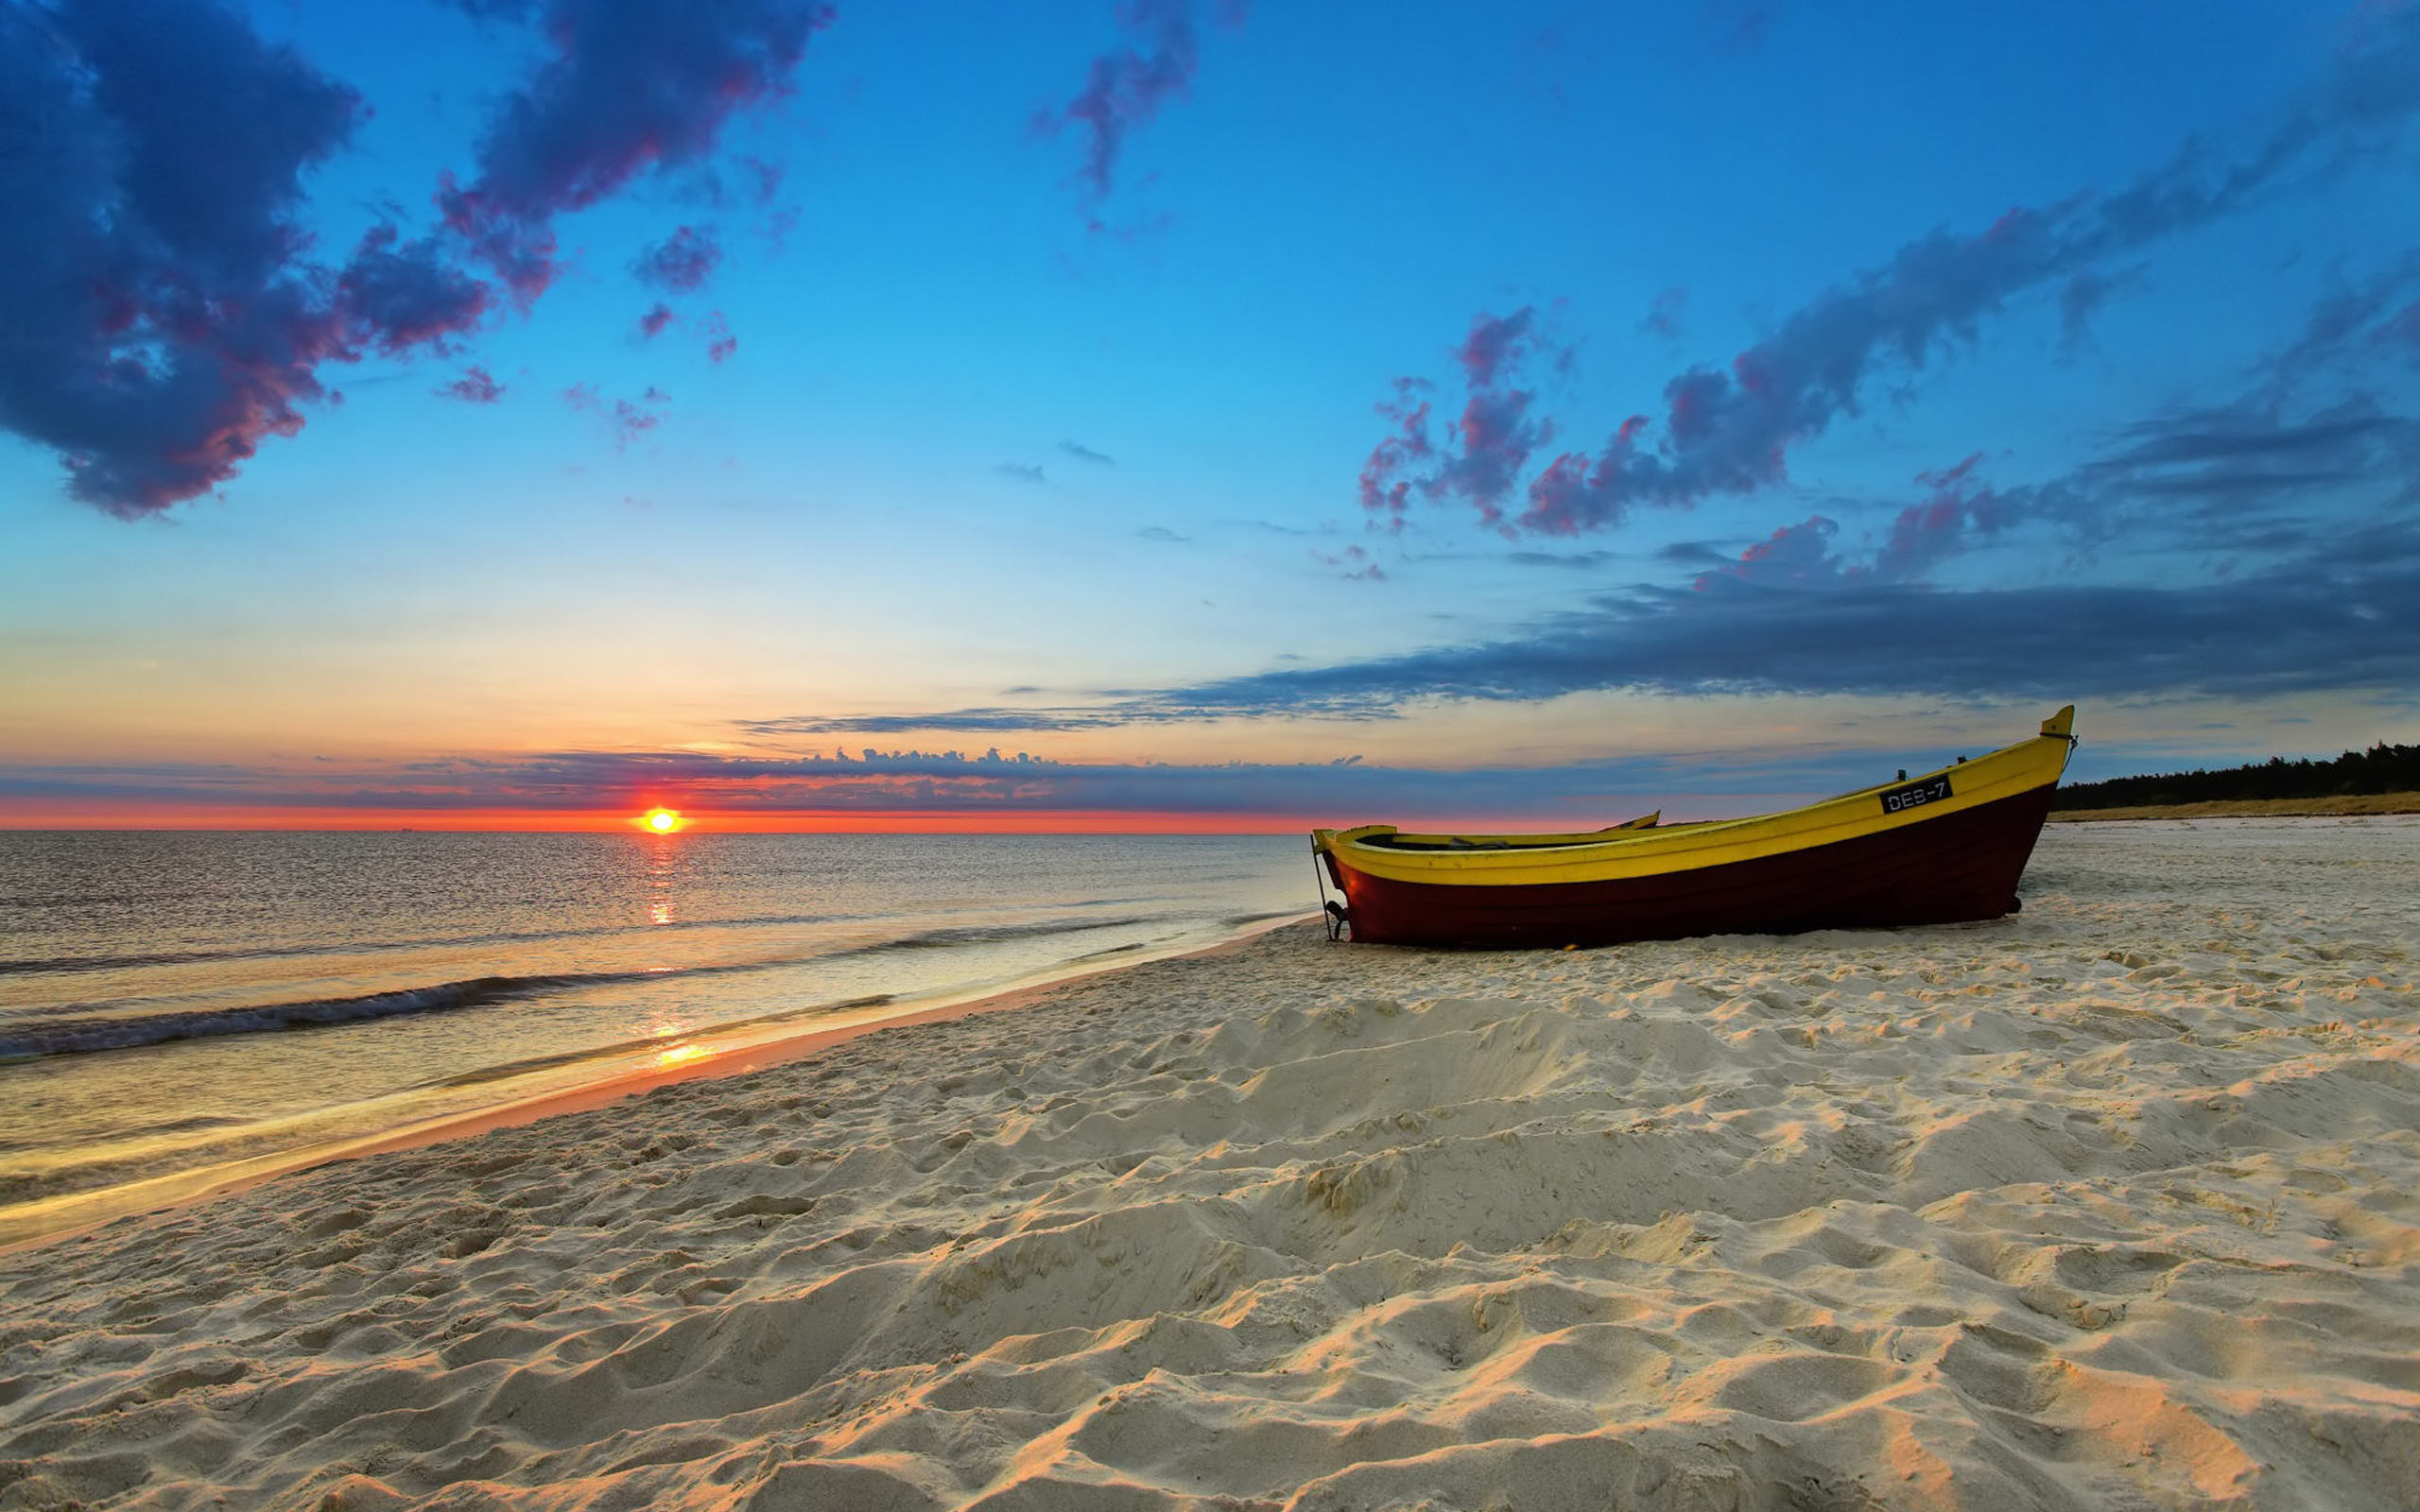 beautiful hd beach sunset wallpapers top desktop images widescreenjpg 2560x1600